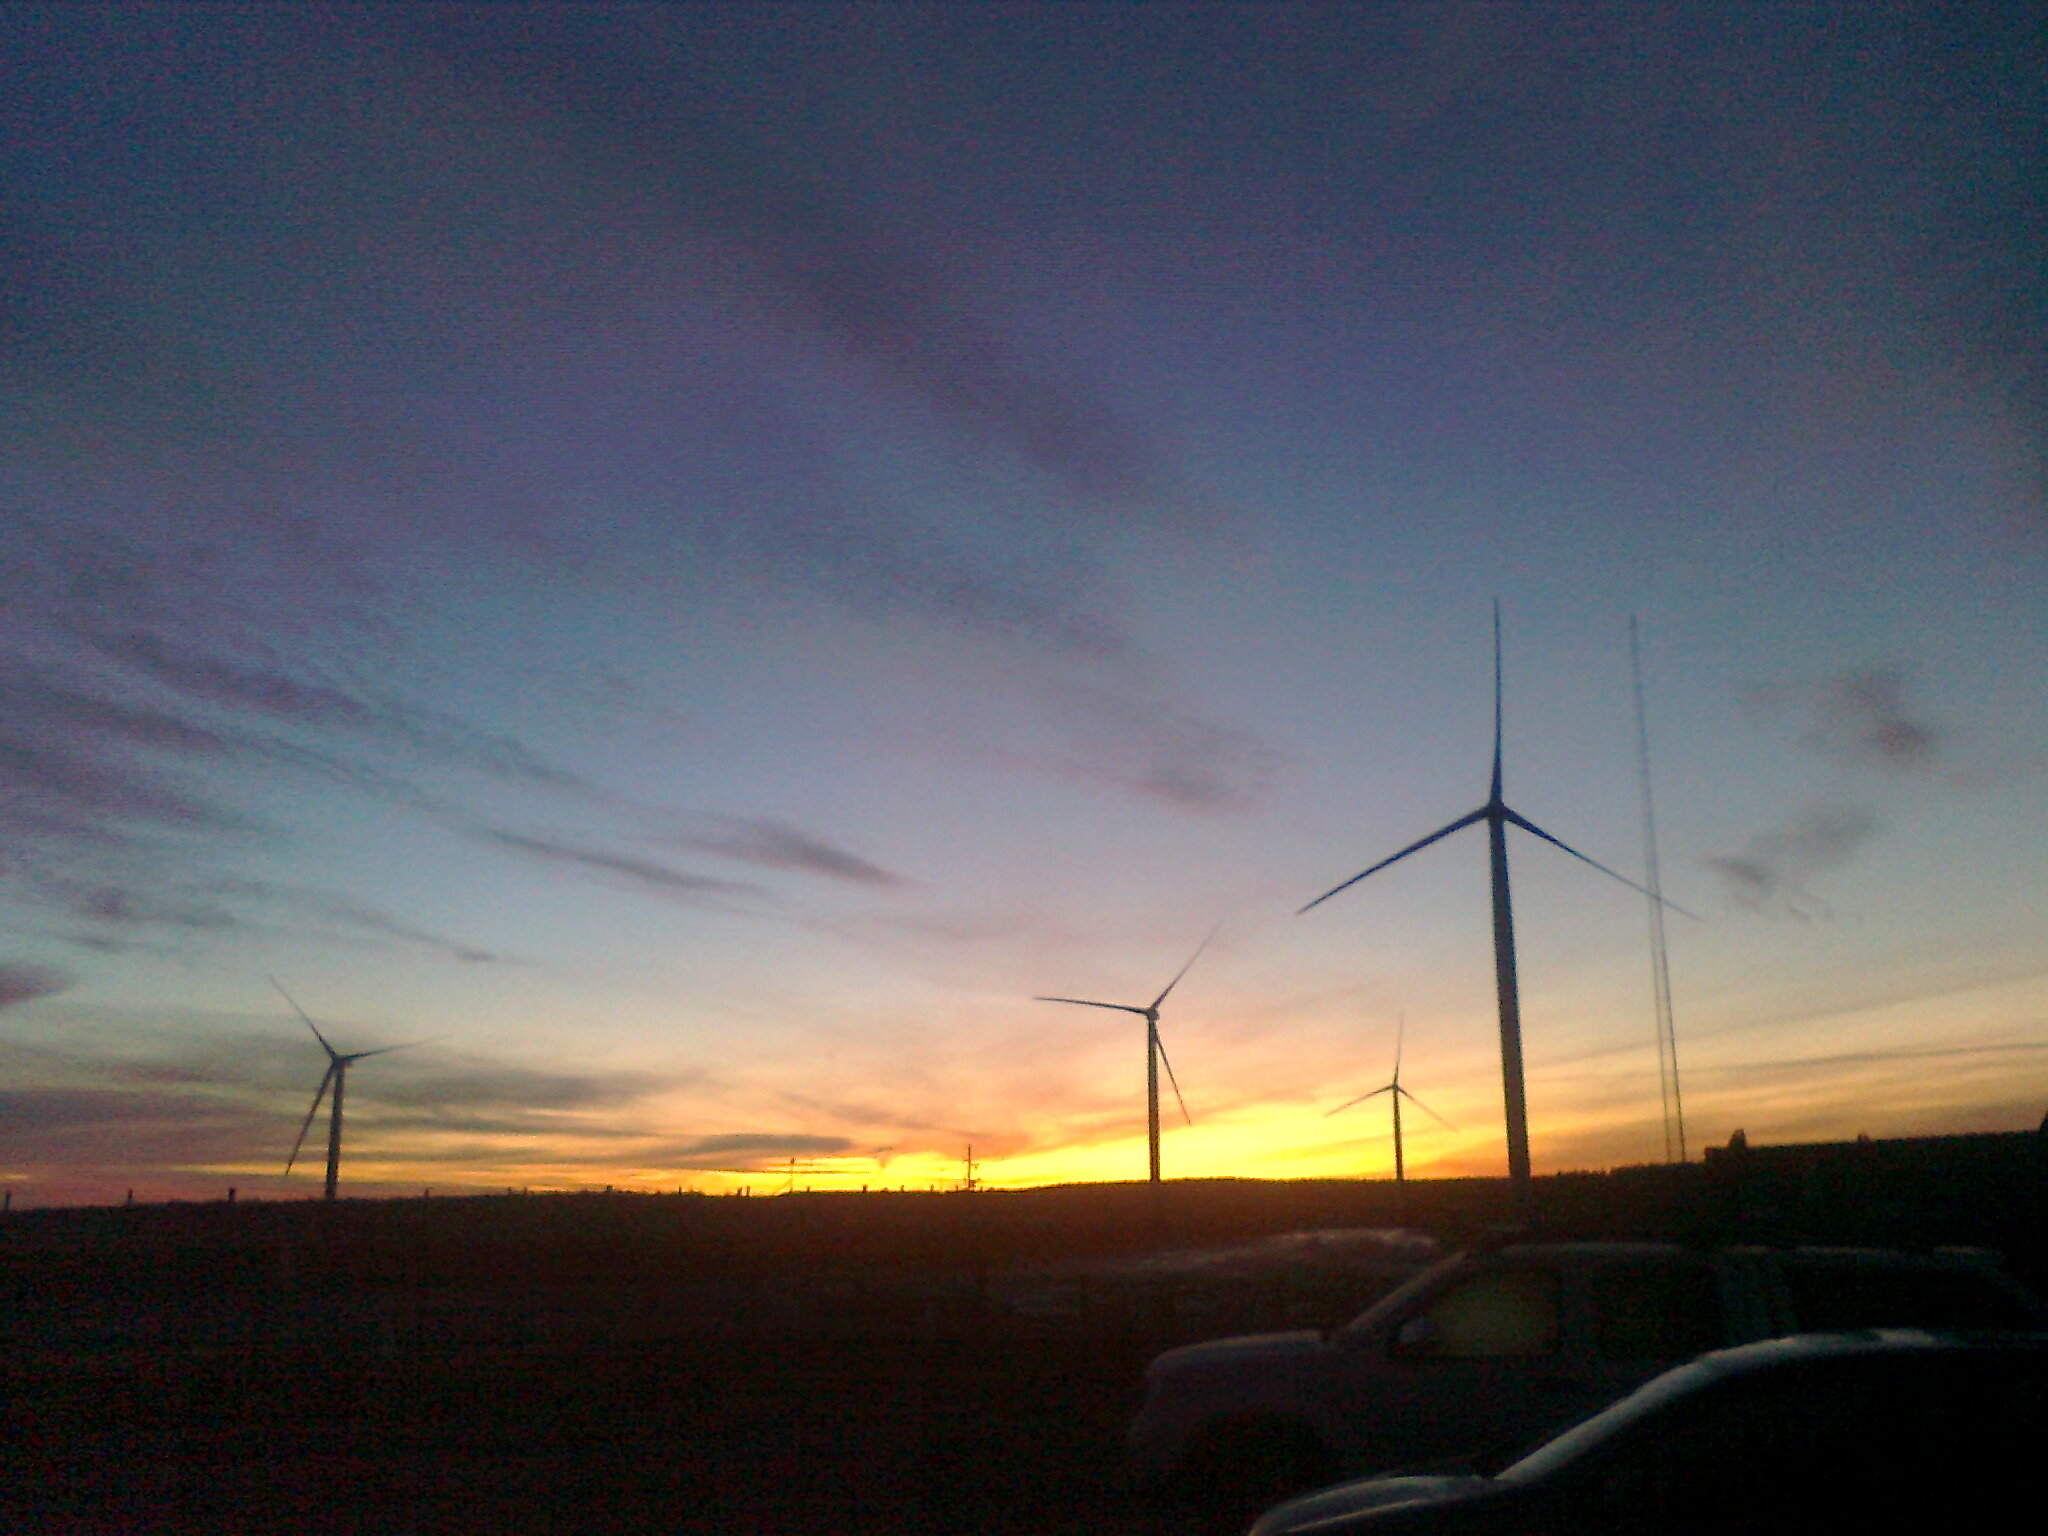 Ballybay, Foyle and Cnoc Wind Farms